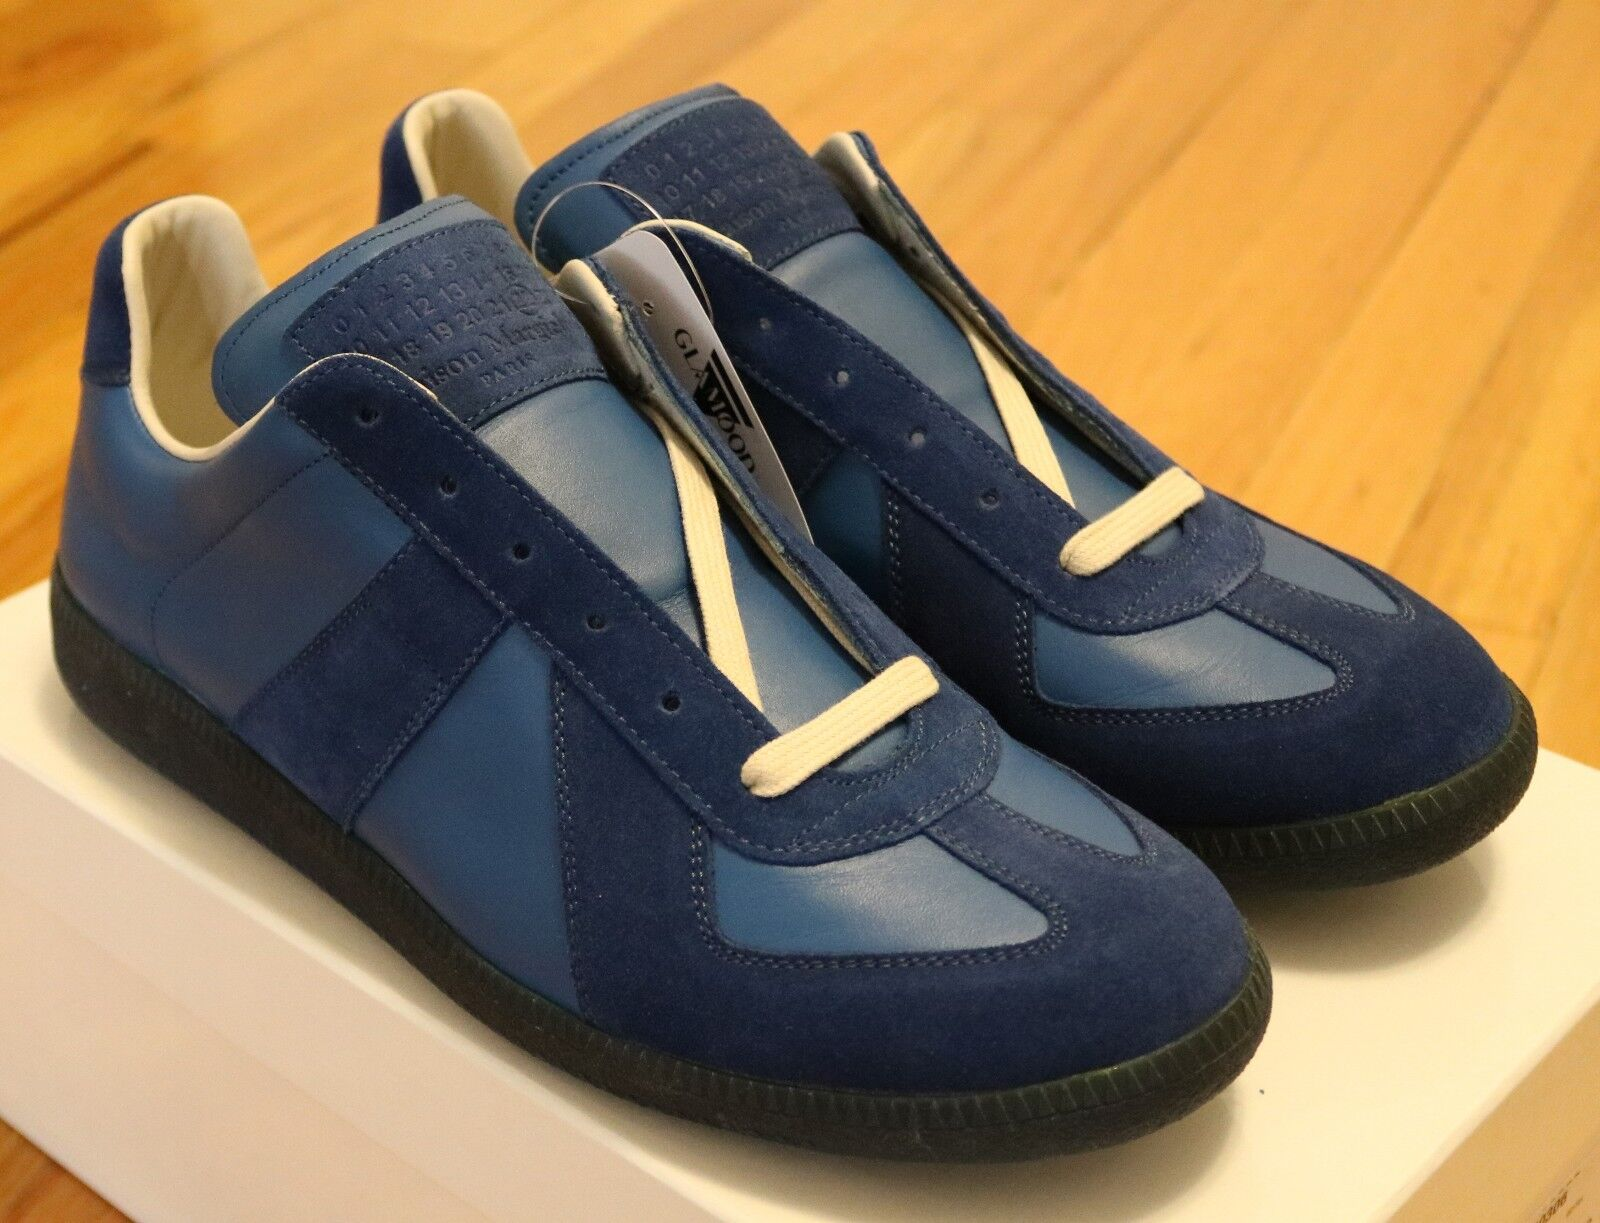 Maison Martin Margiela GATs Low bluee Leather Suede Size 39 40 40.5 41.5 42 43.5